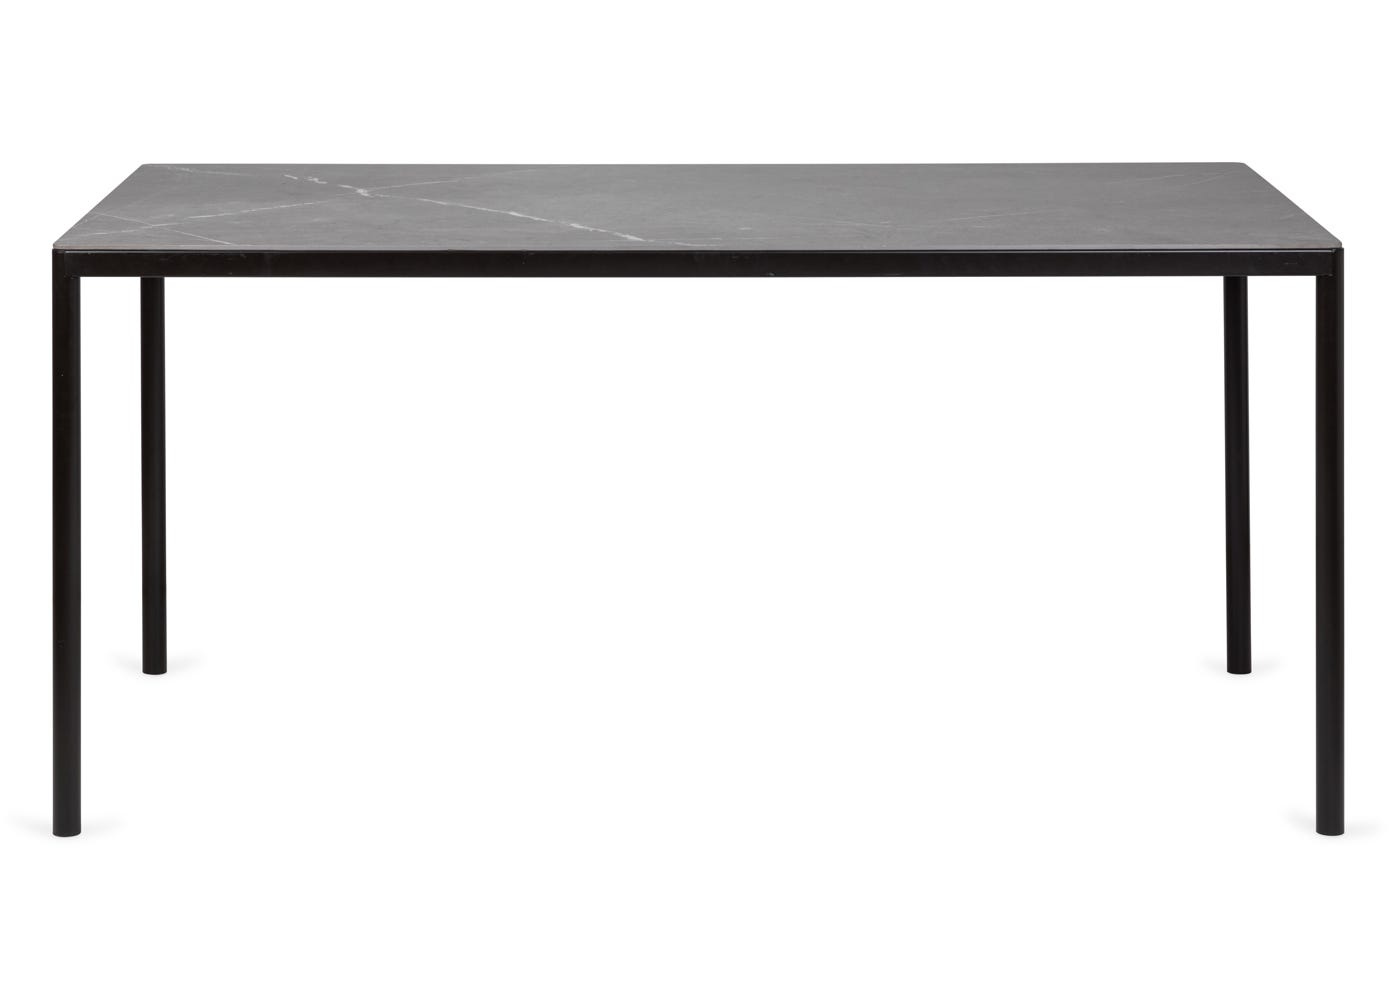 As shown: Petra outdoor dining table - Front profile.